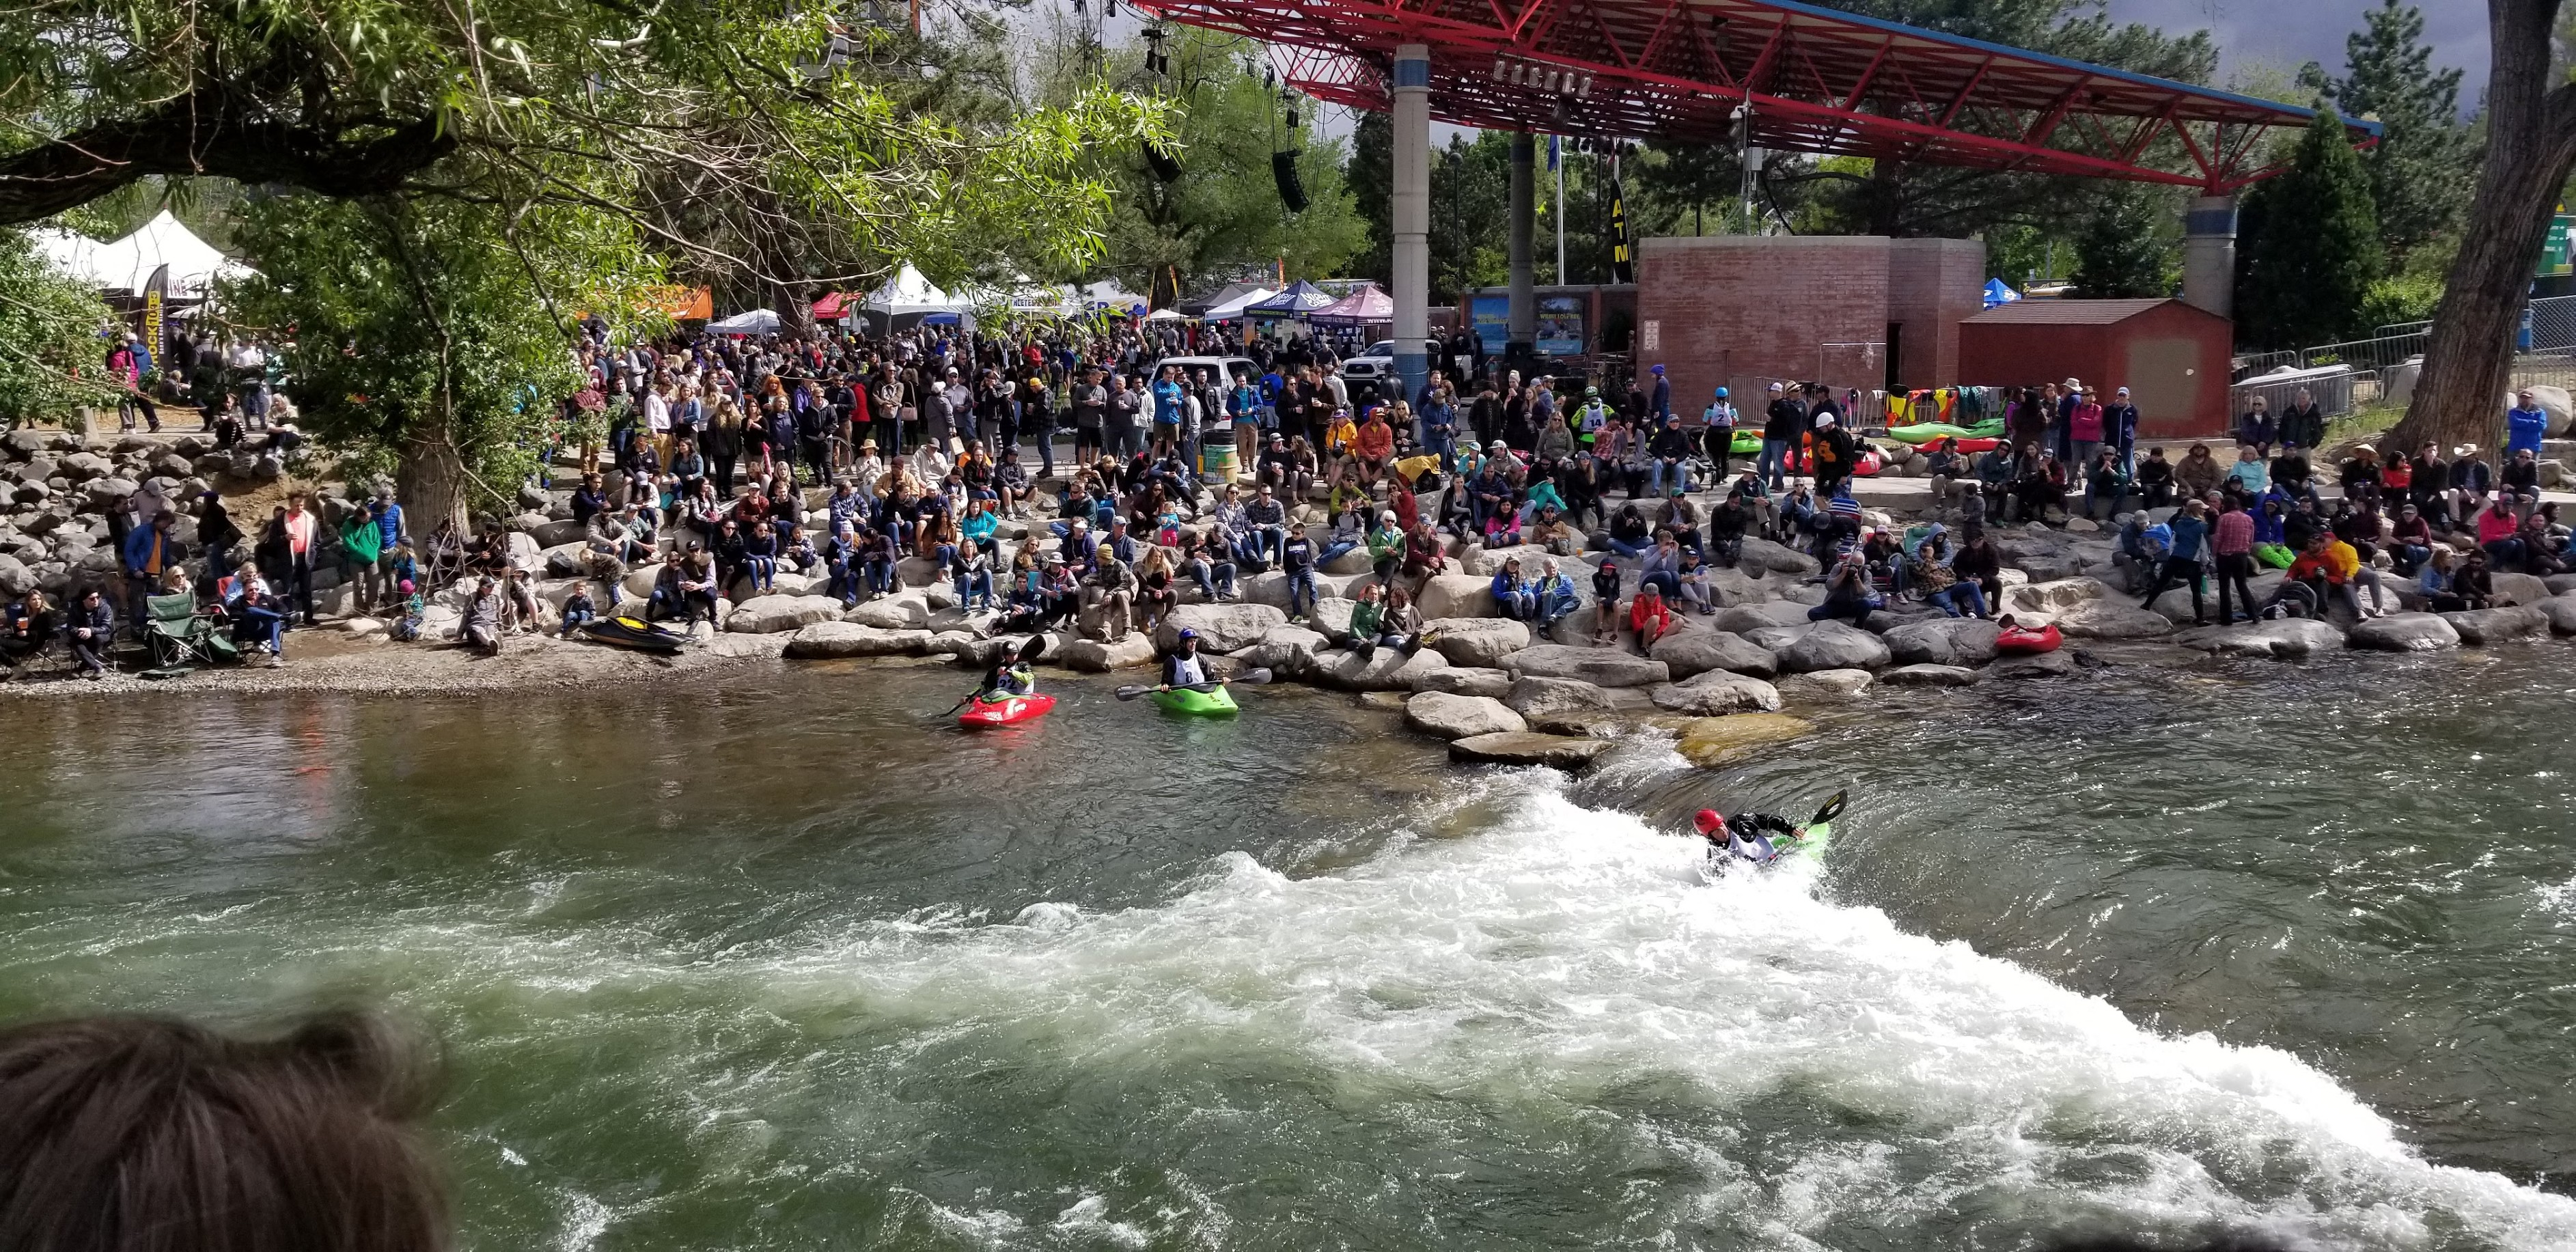 Kayak Races, Truckee River, Reno, NV